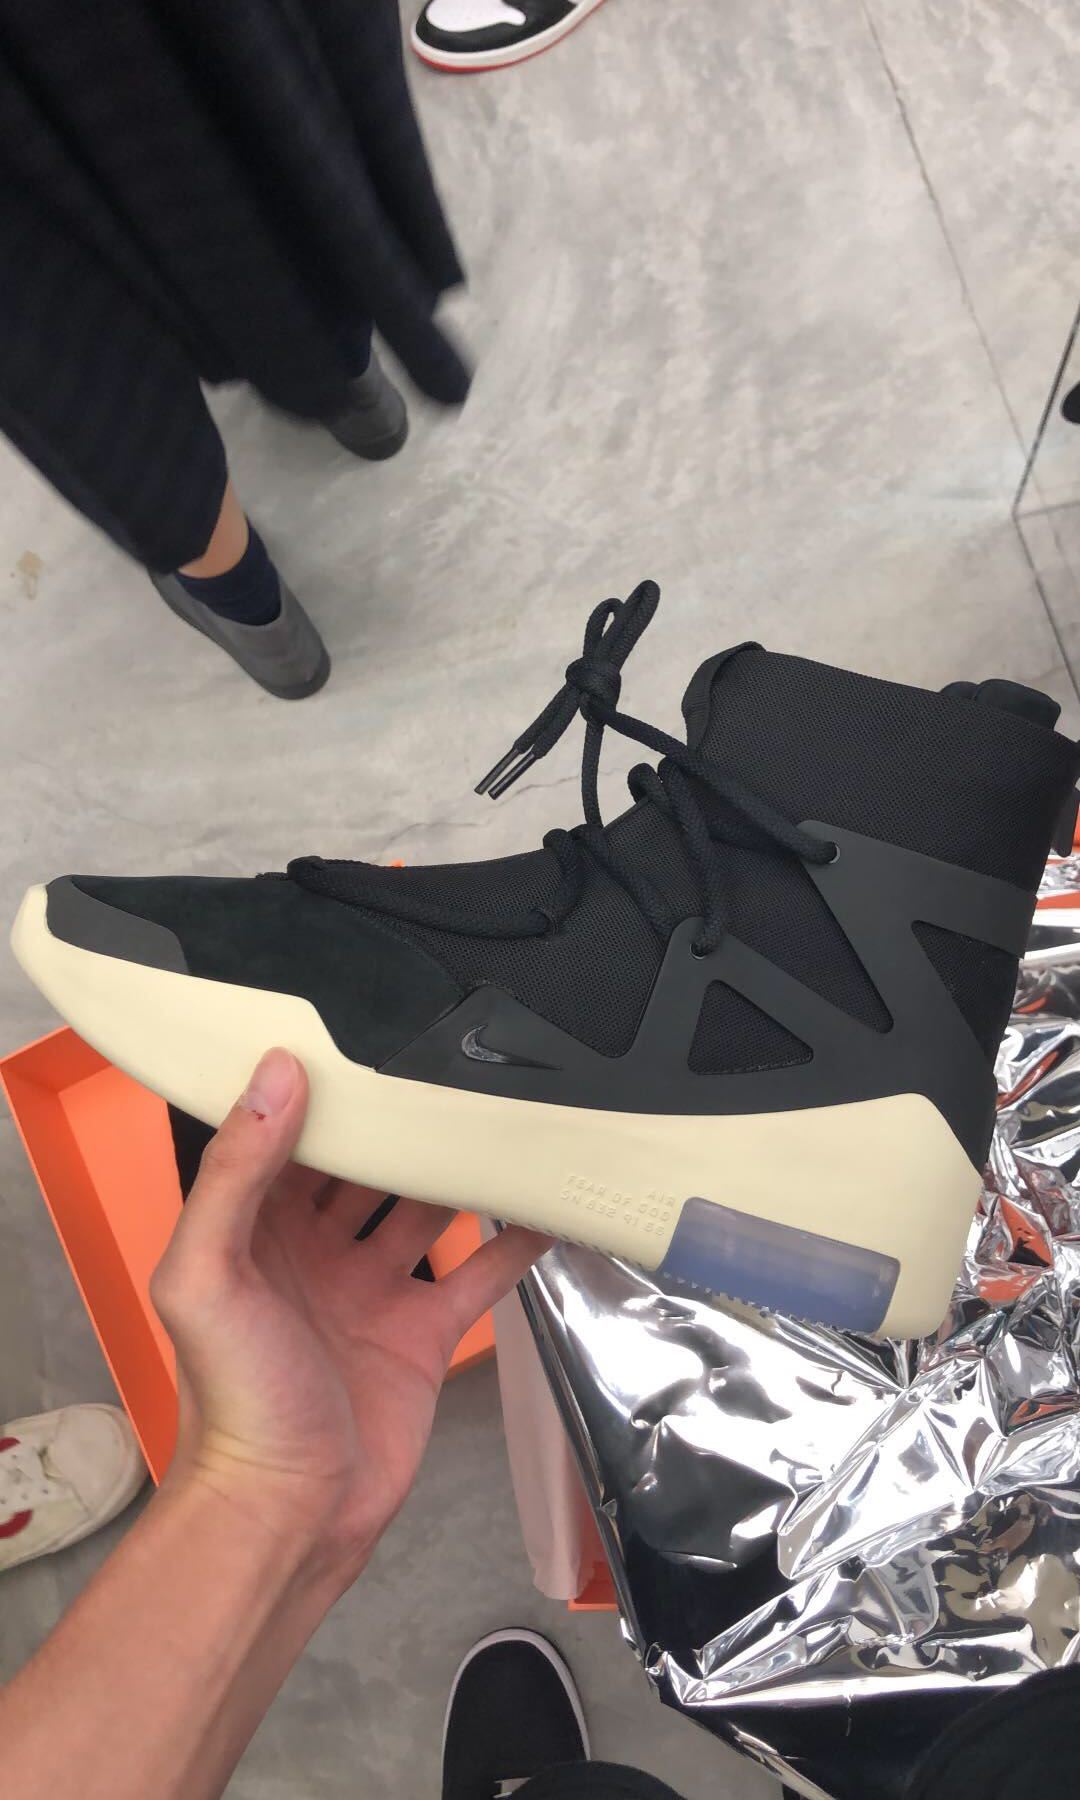 0d04e8334 Nike Air Fear Of God High Top Sneaker US9.5, Men's Fashion, Footwear,  Sneakers on Carousell